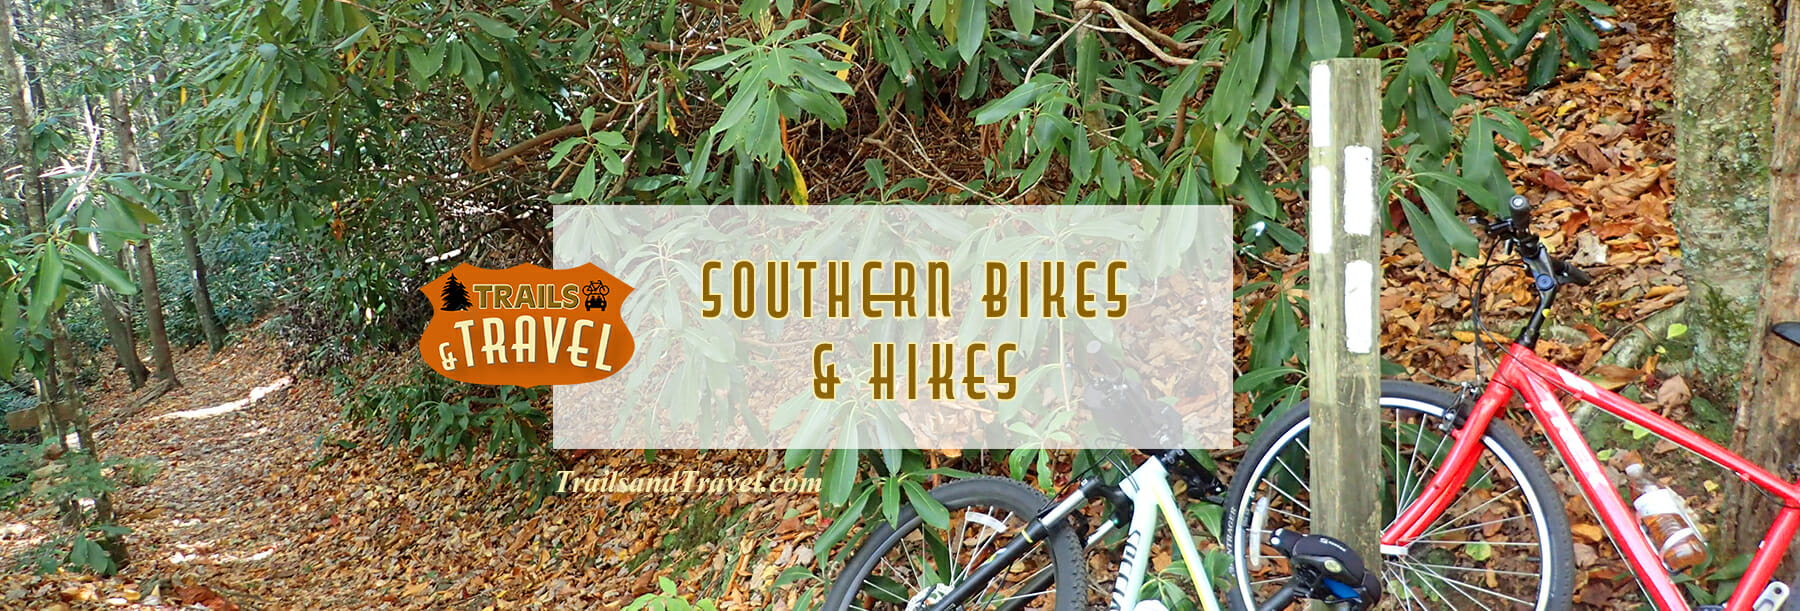 Southern Bikes & Hikes